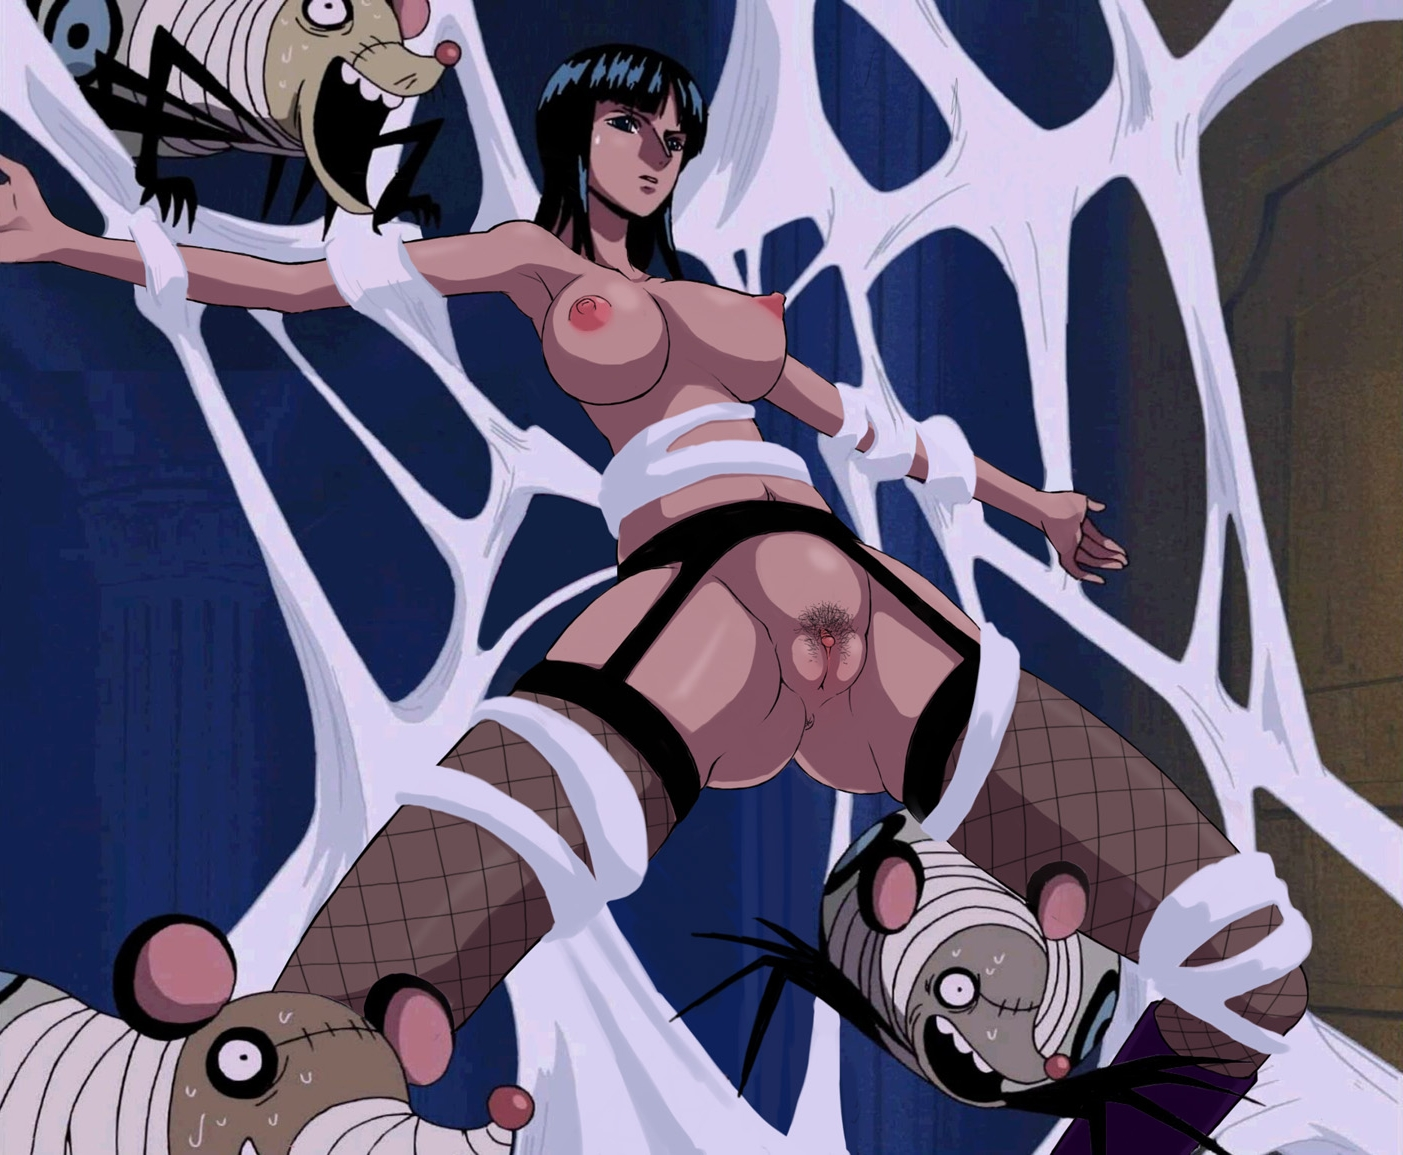 Toon sex pic ##000130147471 bondage nico robin nude nude filter one piece photoshop screenshot thighhighs